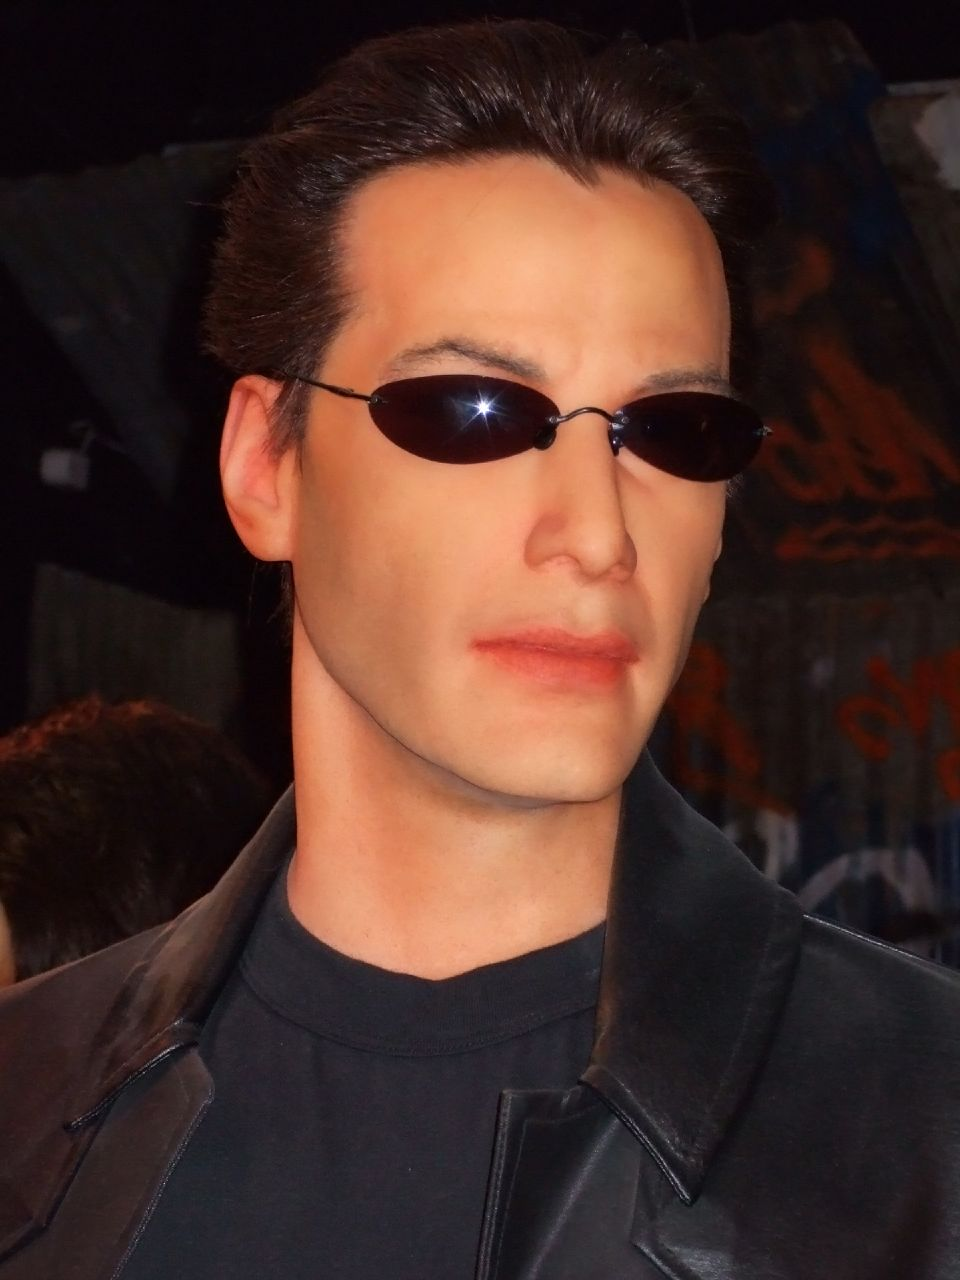 Keanu Reeves as Neo at the SF Wax Museum